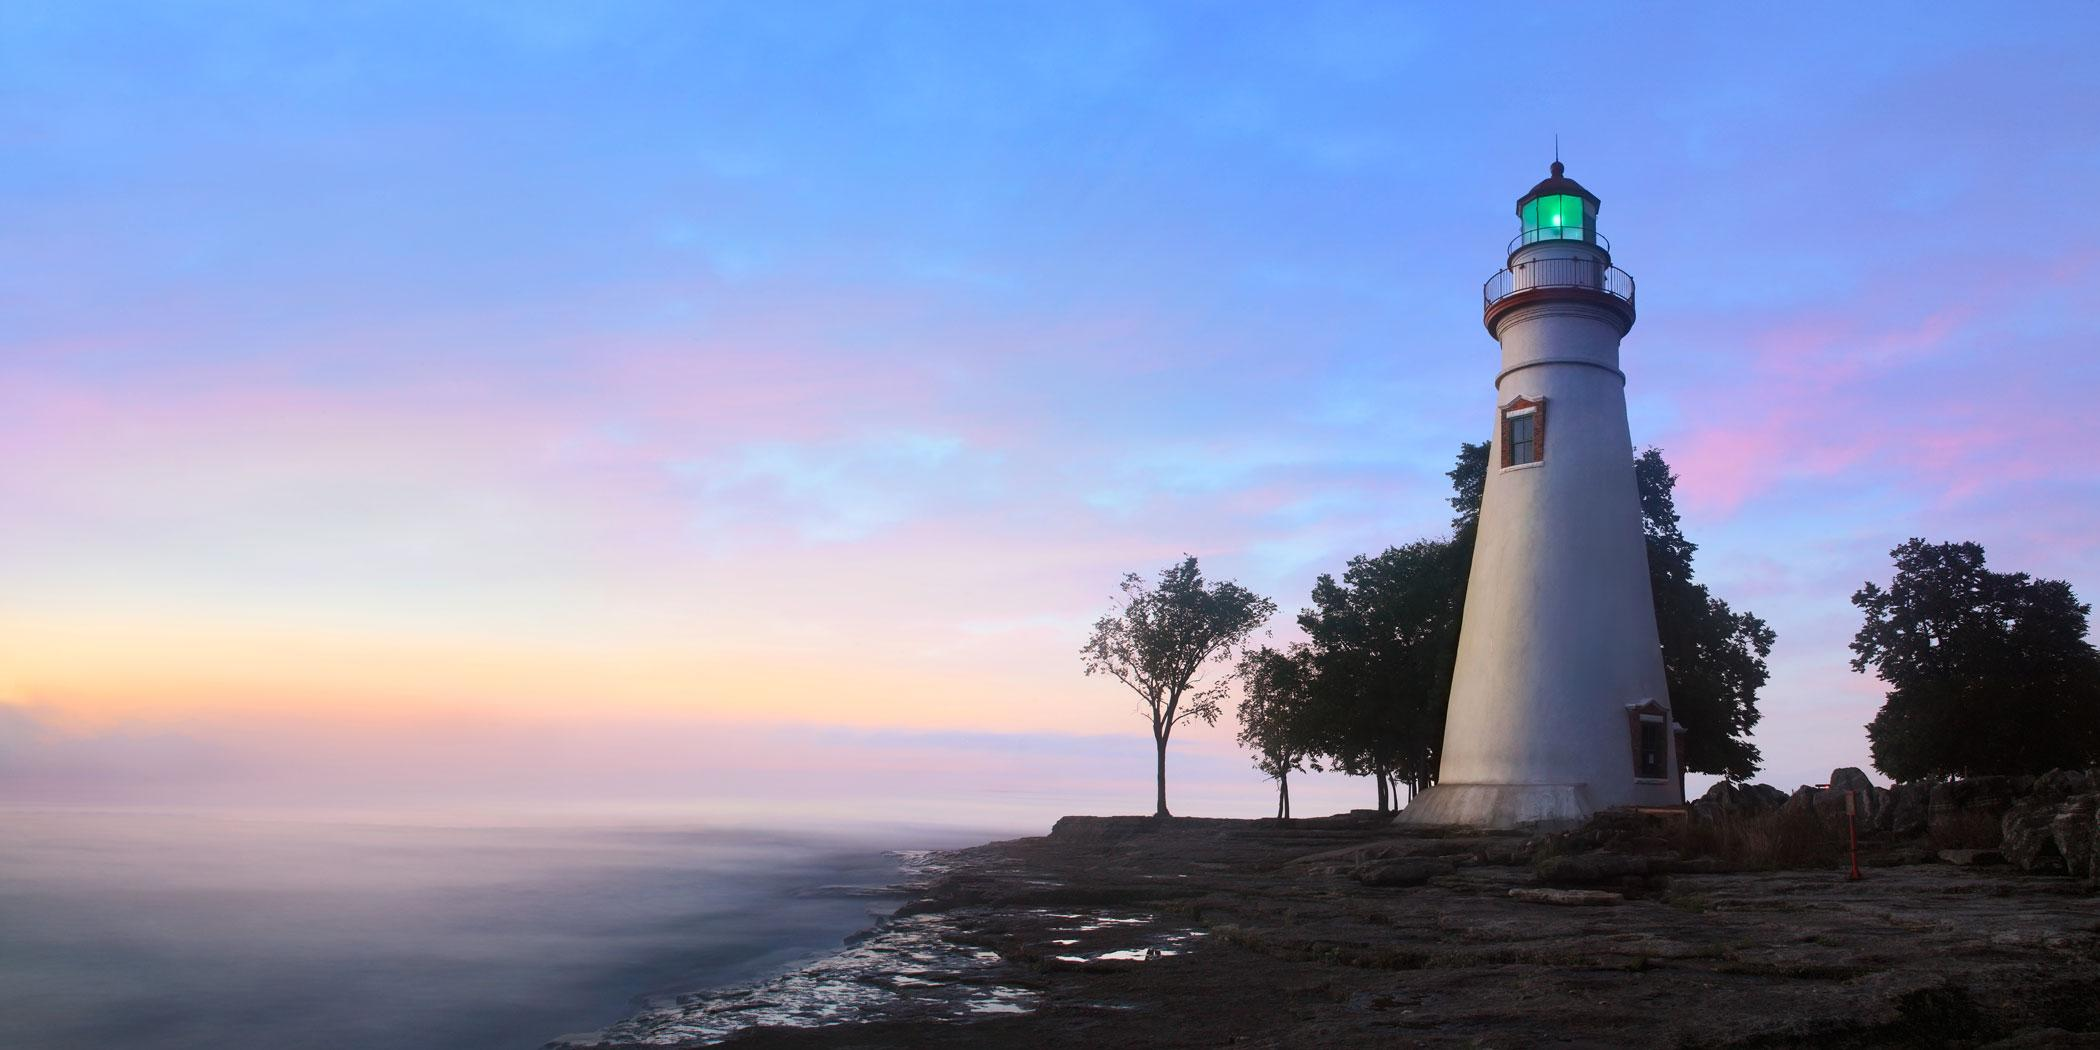 The Marblehead Lighthouse Photo: Adobe Stock